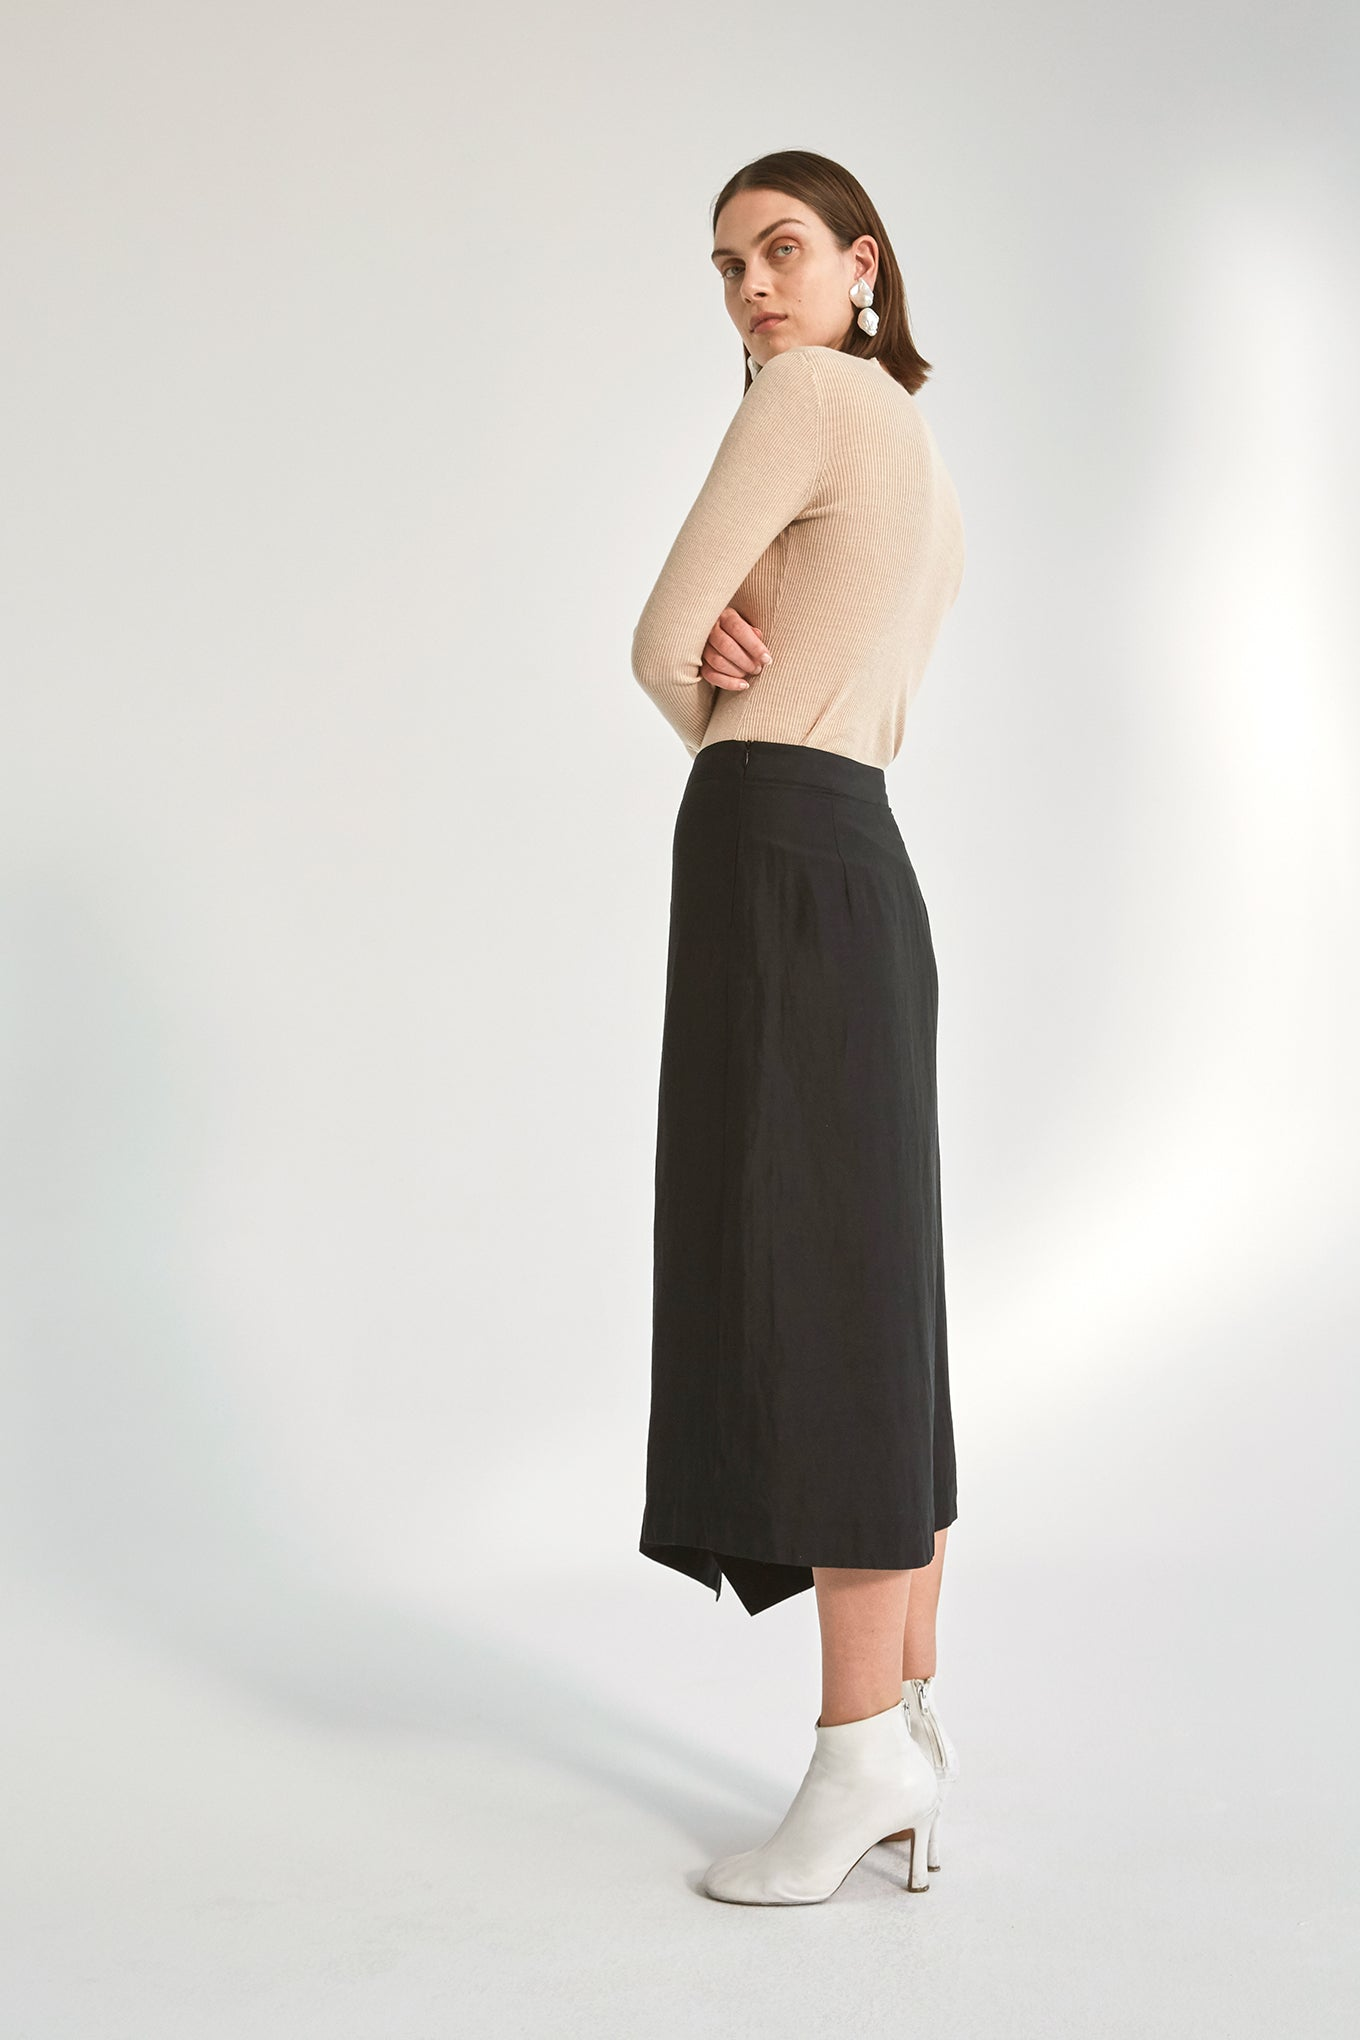 Nina Skirt - Black - Silk/Linen